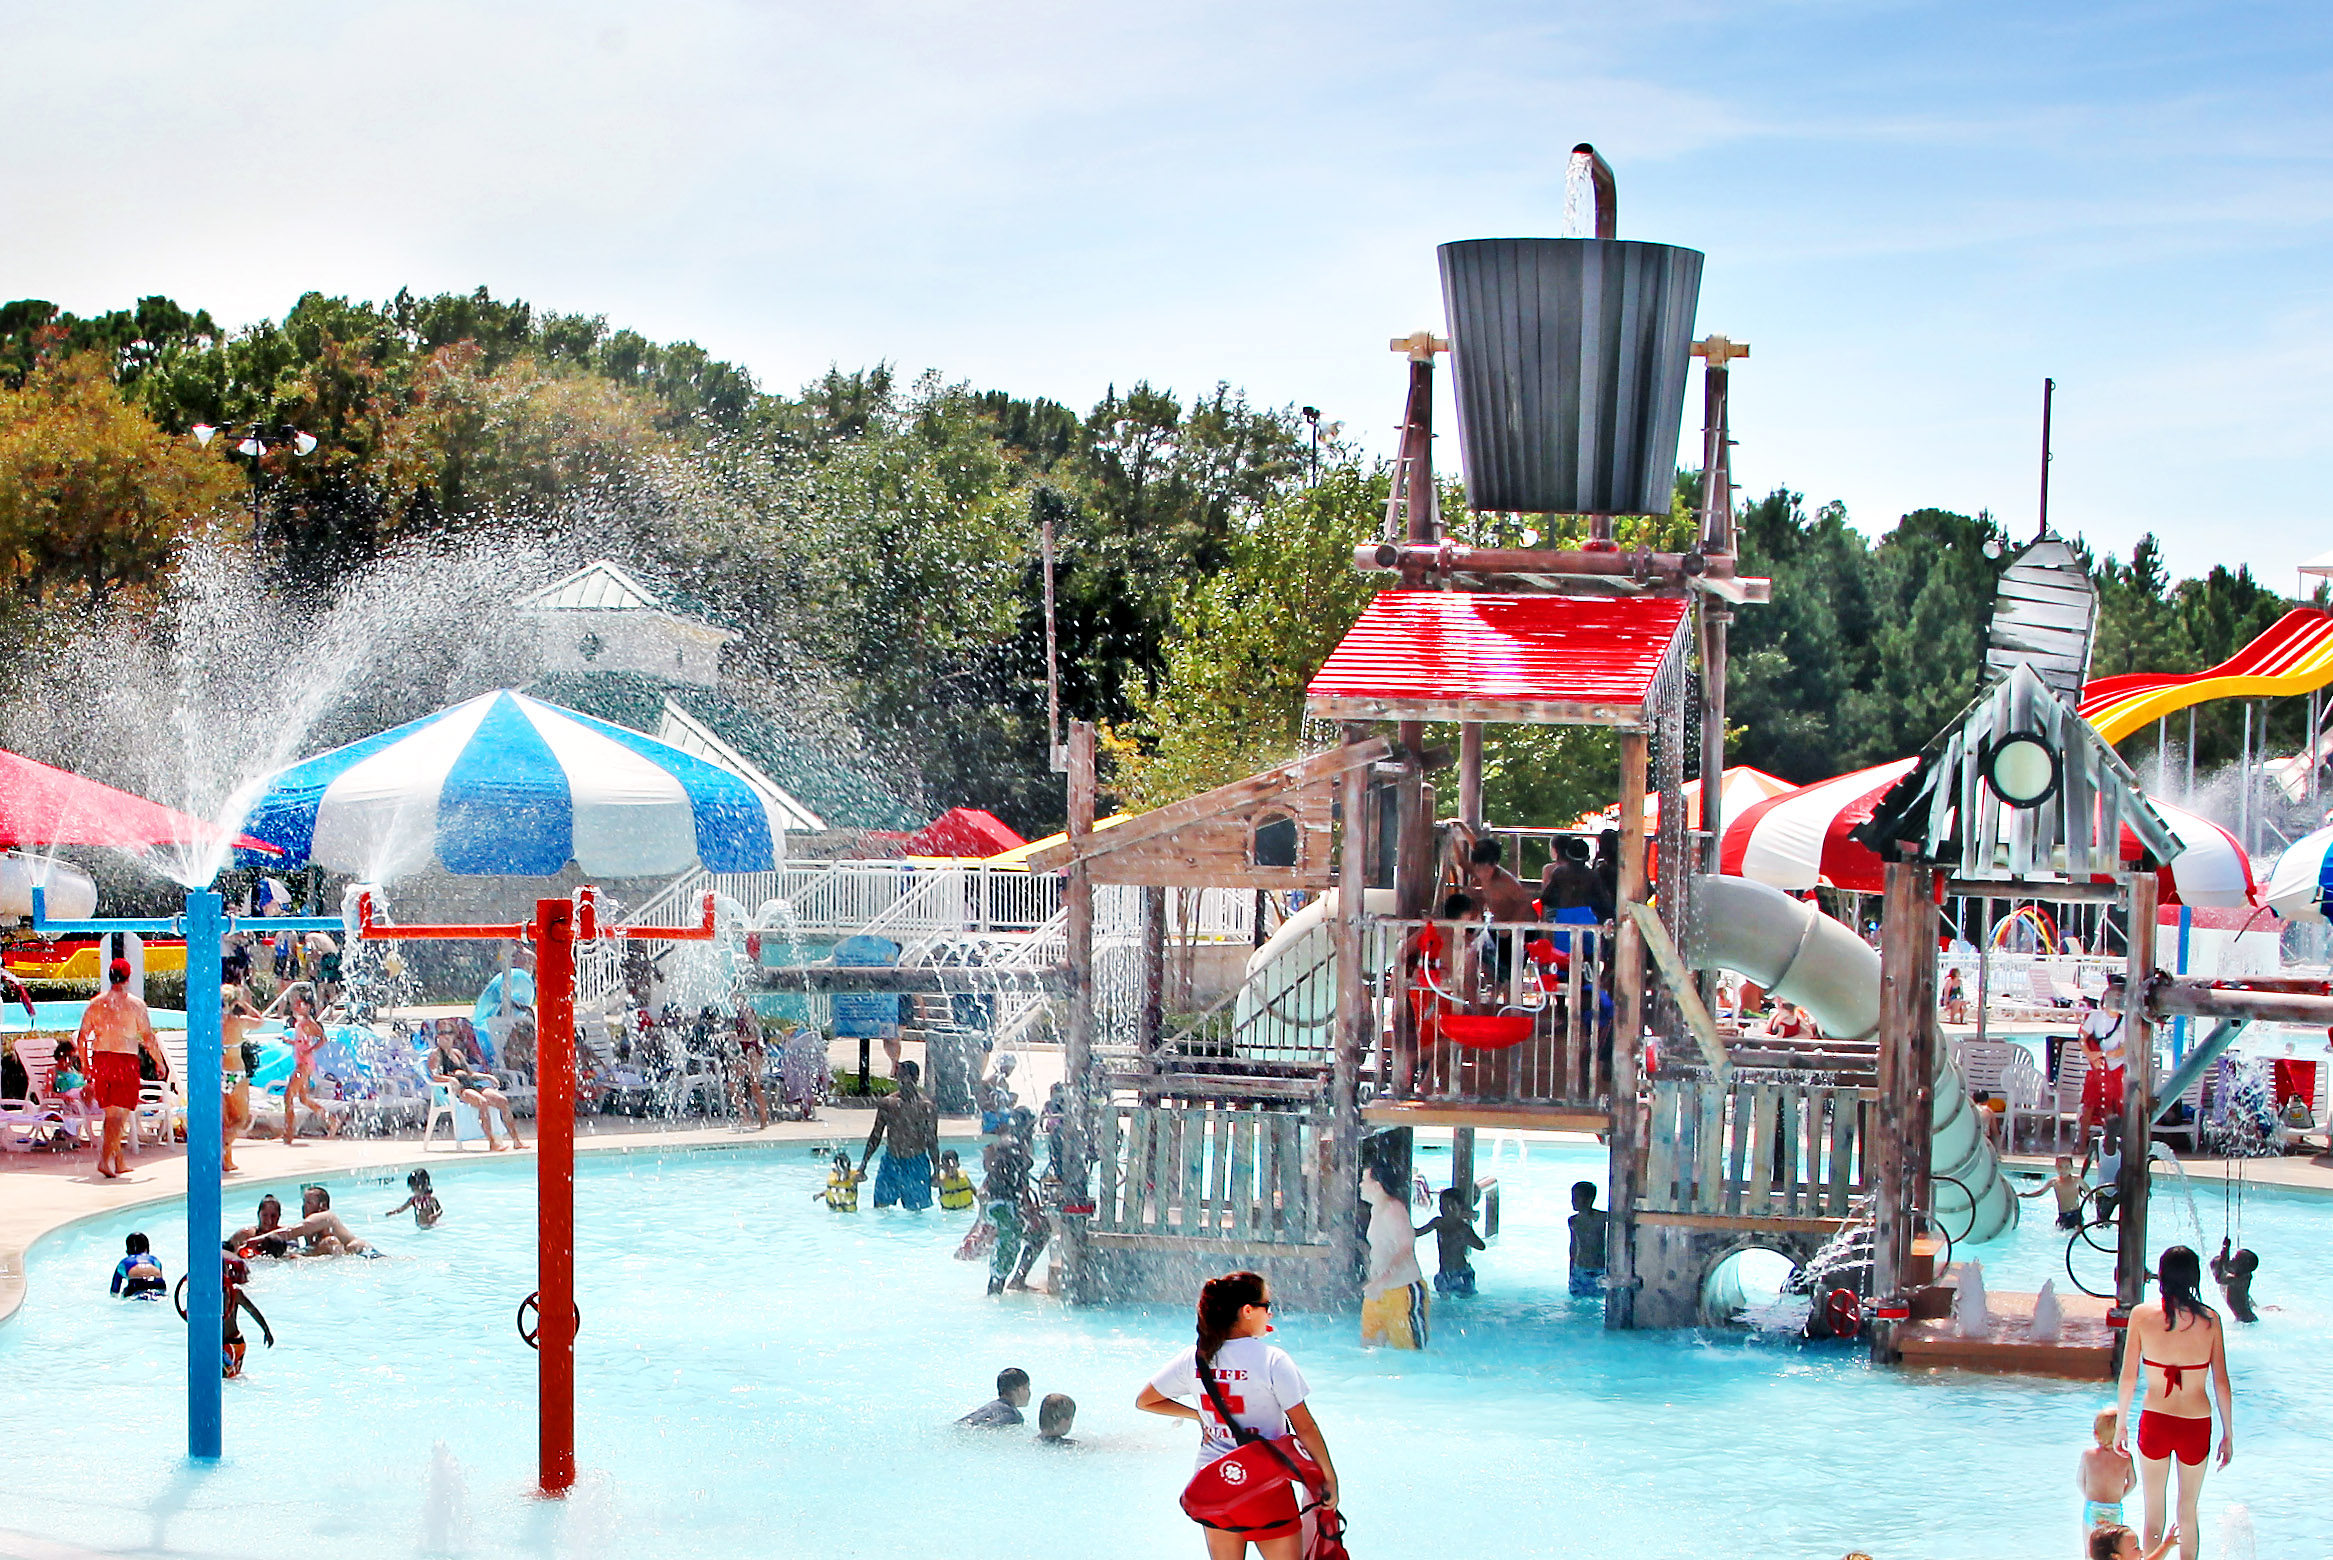 Ammu water park photos 25 Best Things to Do in Kentucky, USA - m